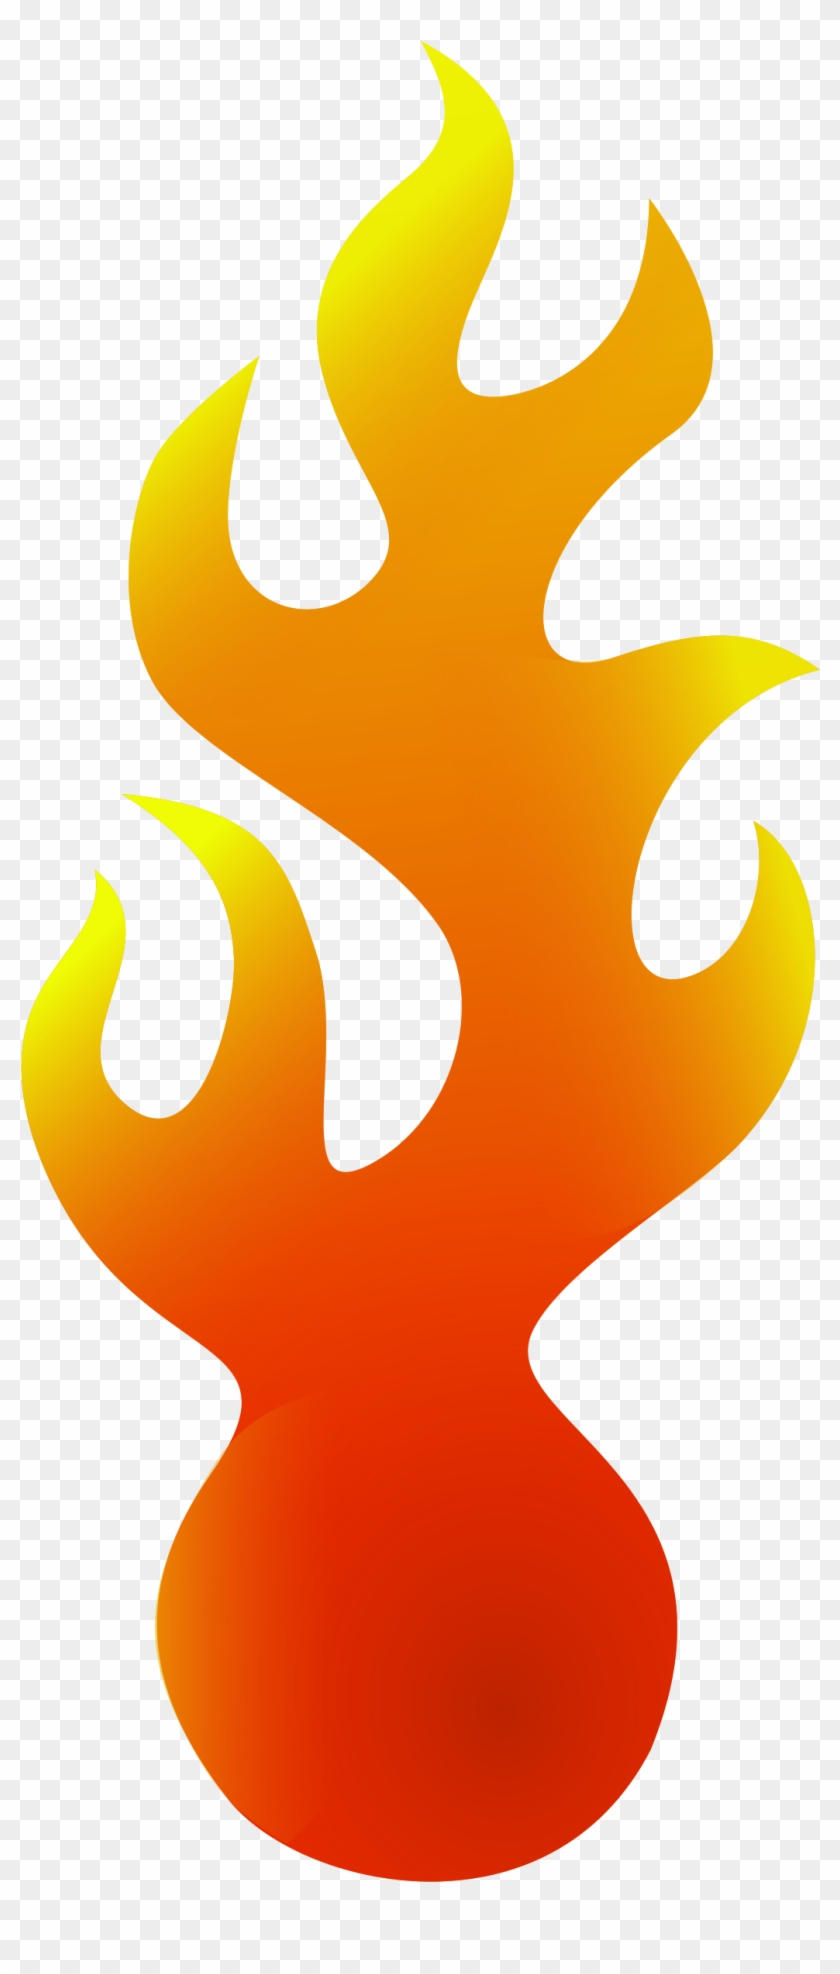 Fire Clip Art To Coloring Pages Free Clipart Images - Bola De Fogo Vetor Png #24885